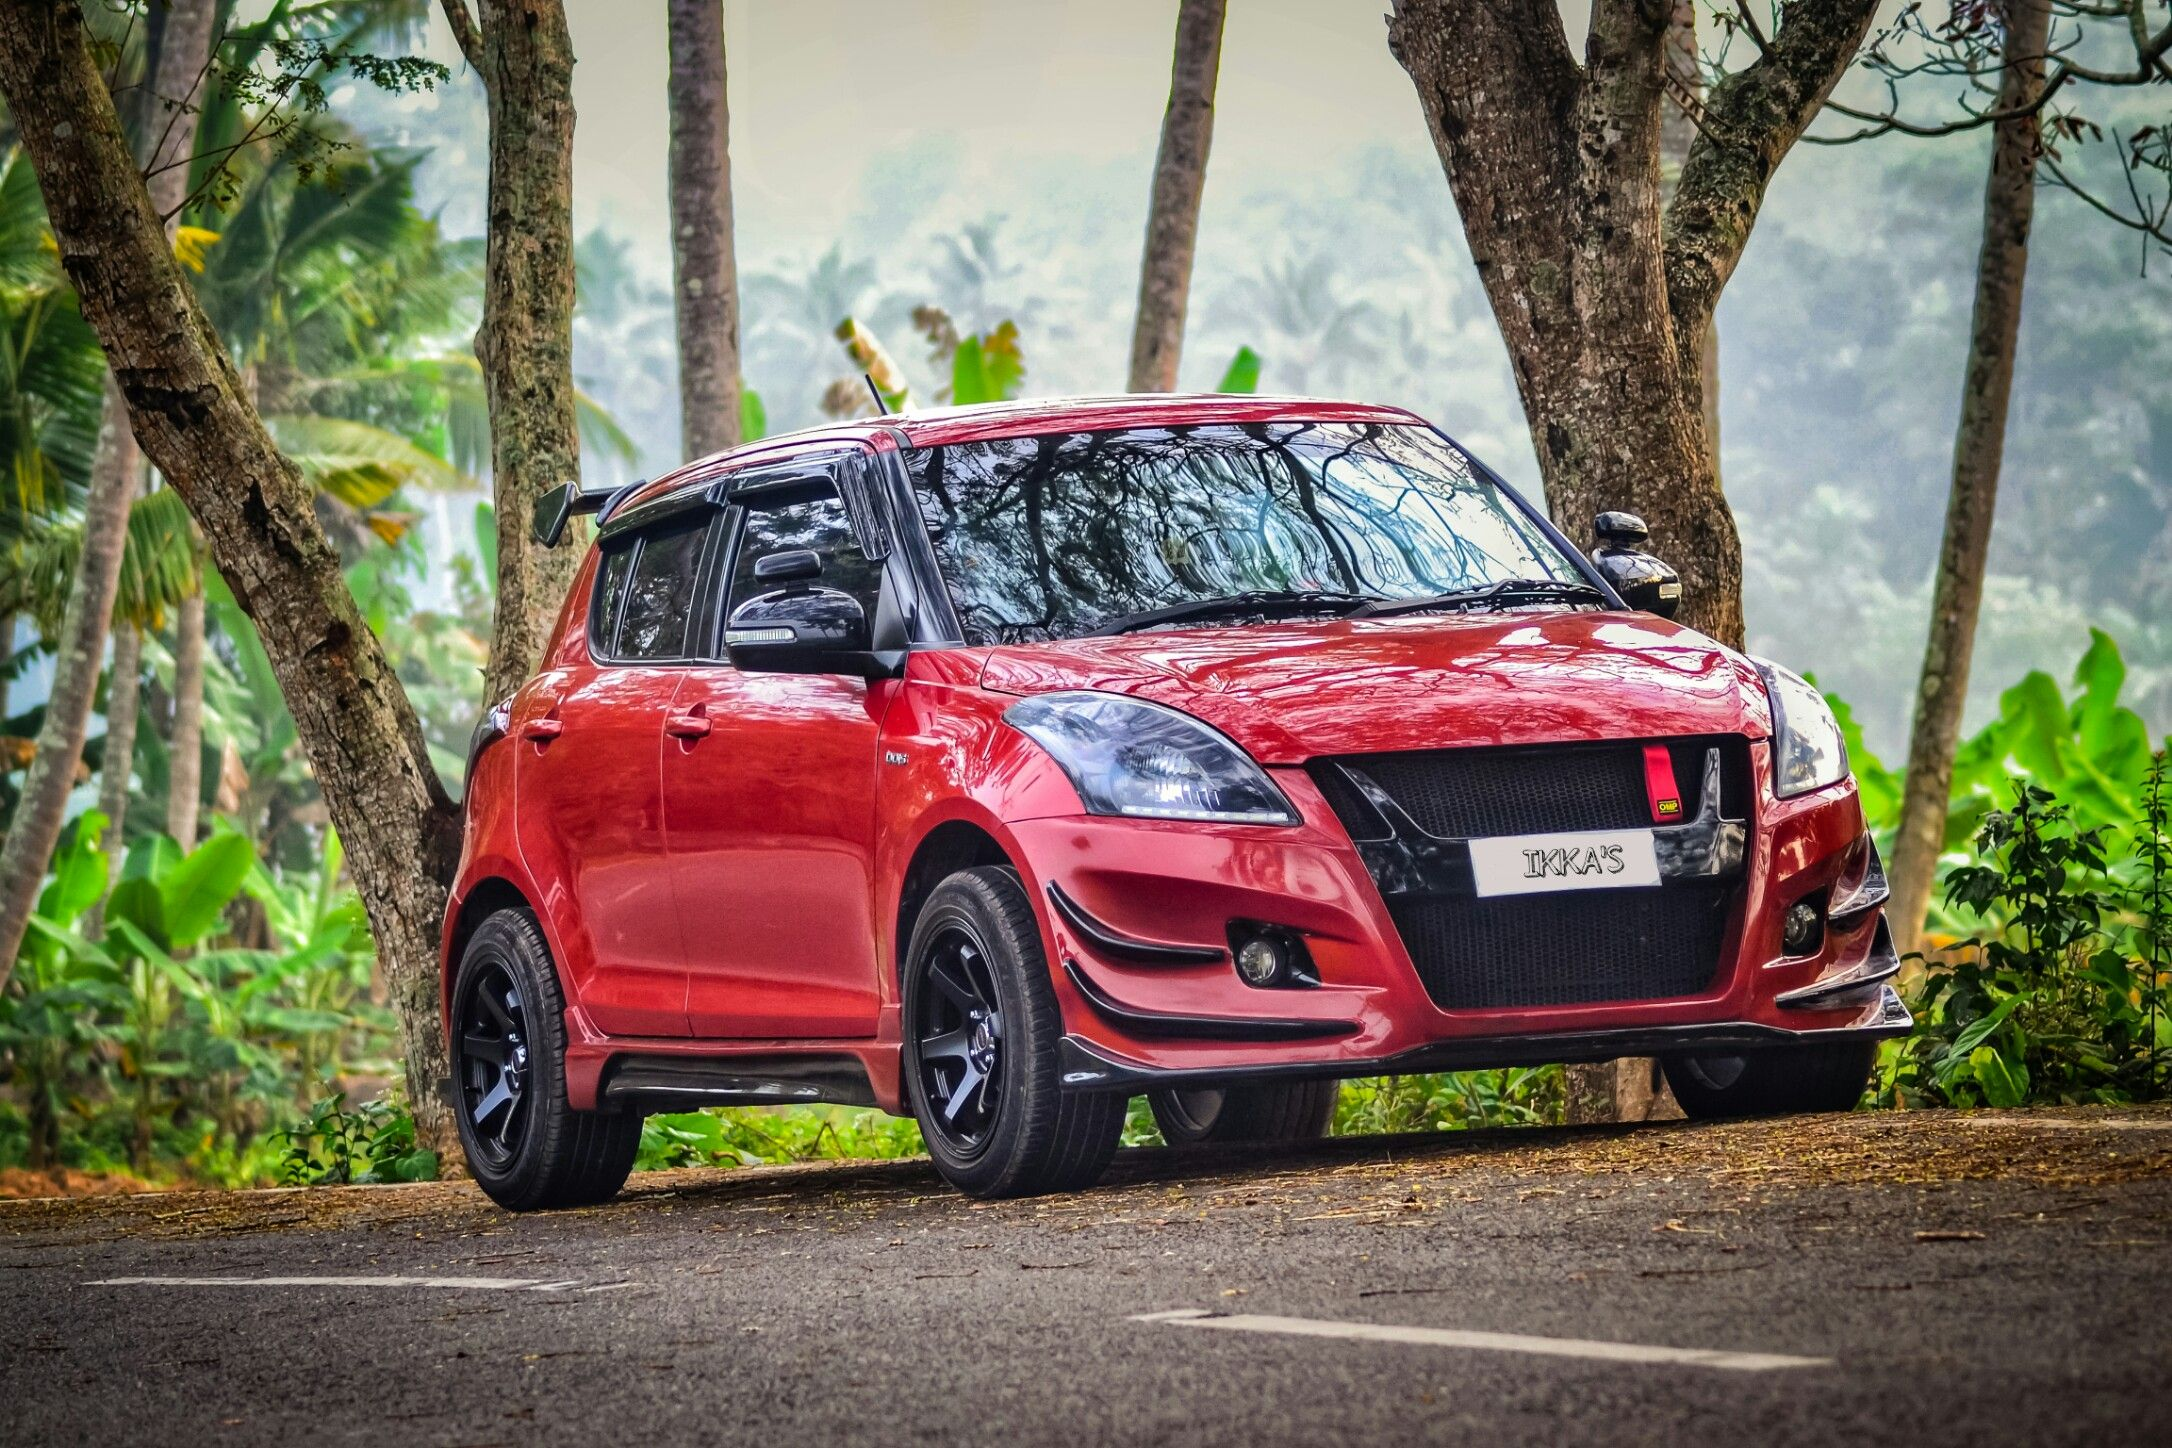 Ikka S 1819 Modified Swift In Kerala Suzuki Swift Tuning